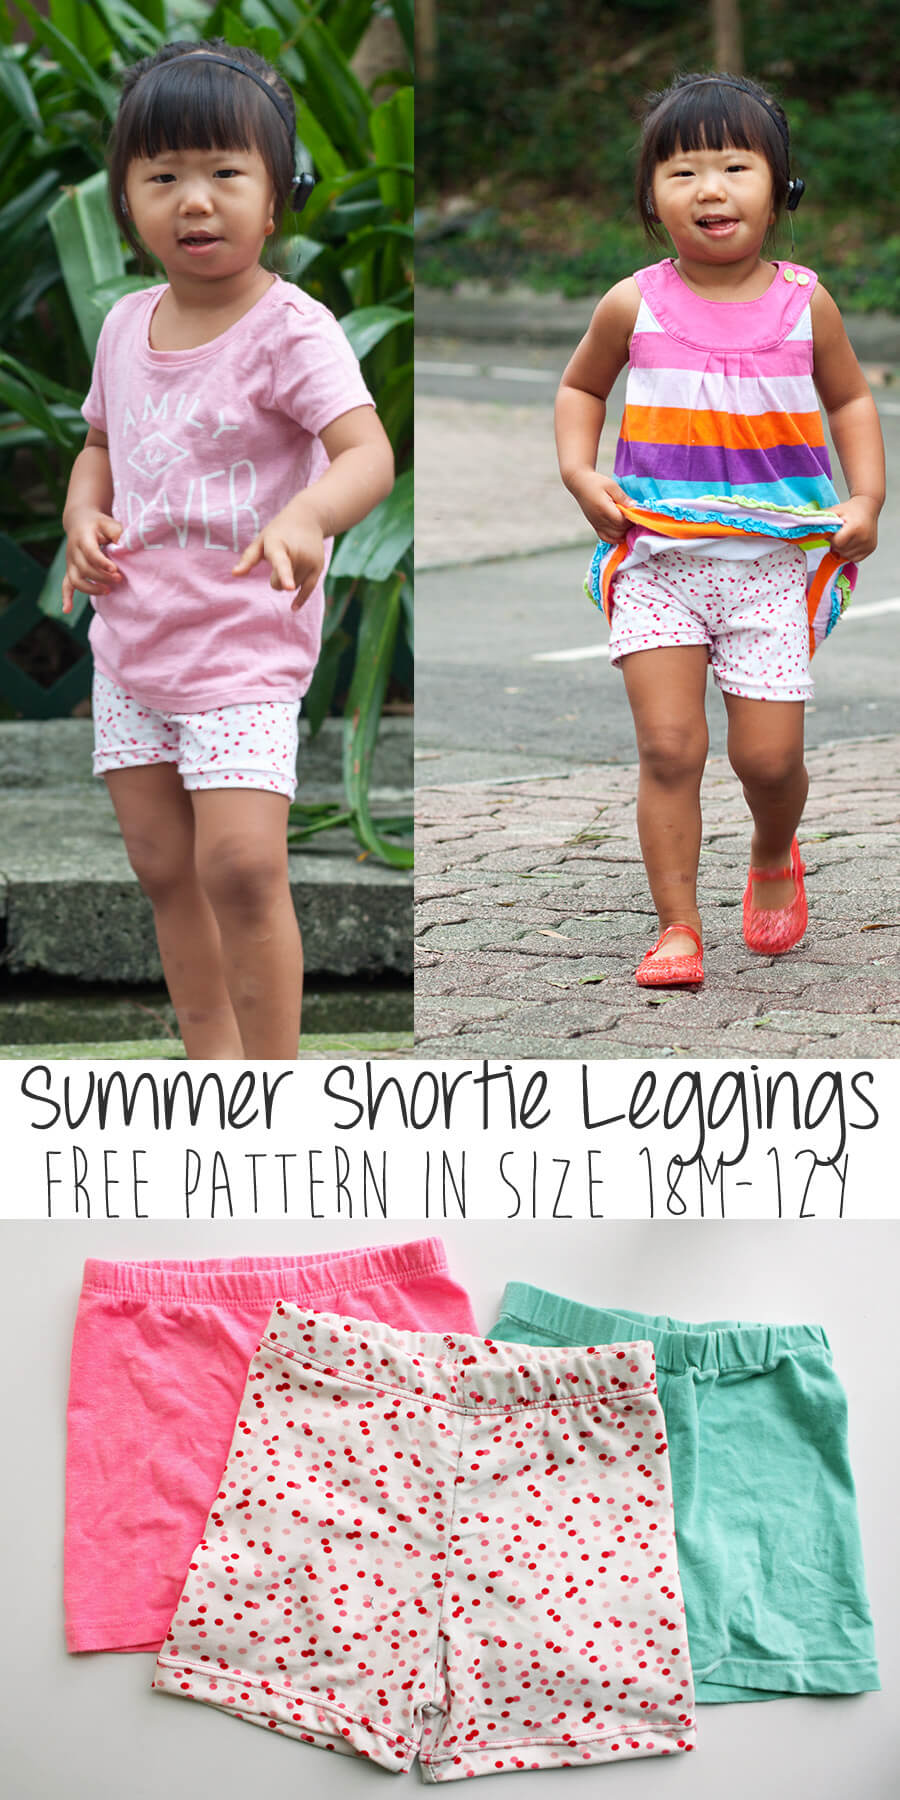 Shortie Leggings Free Pattern perfect for summer size 18M-12Y from Nap-Time Creations